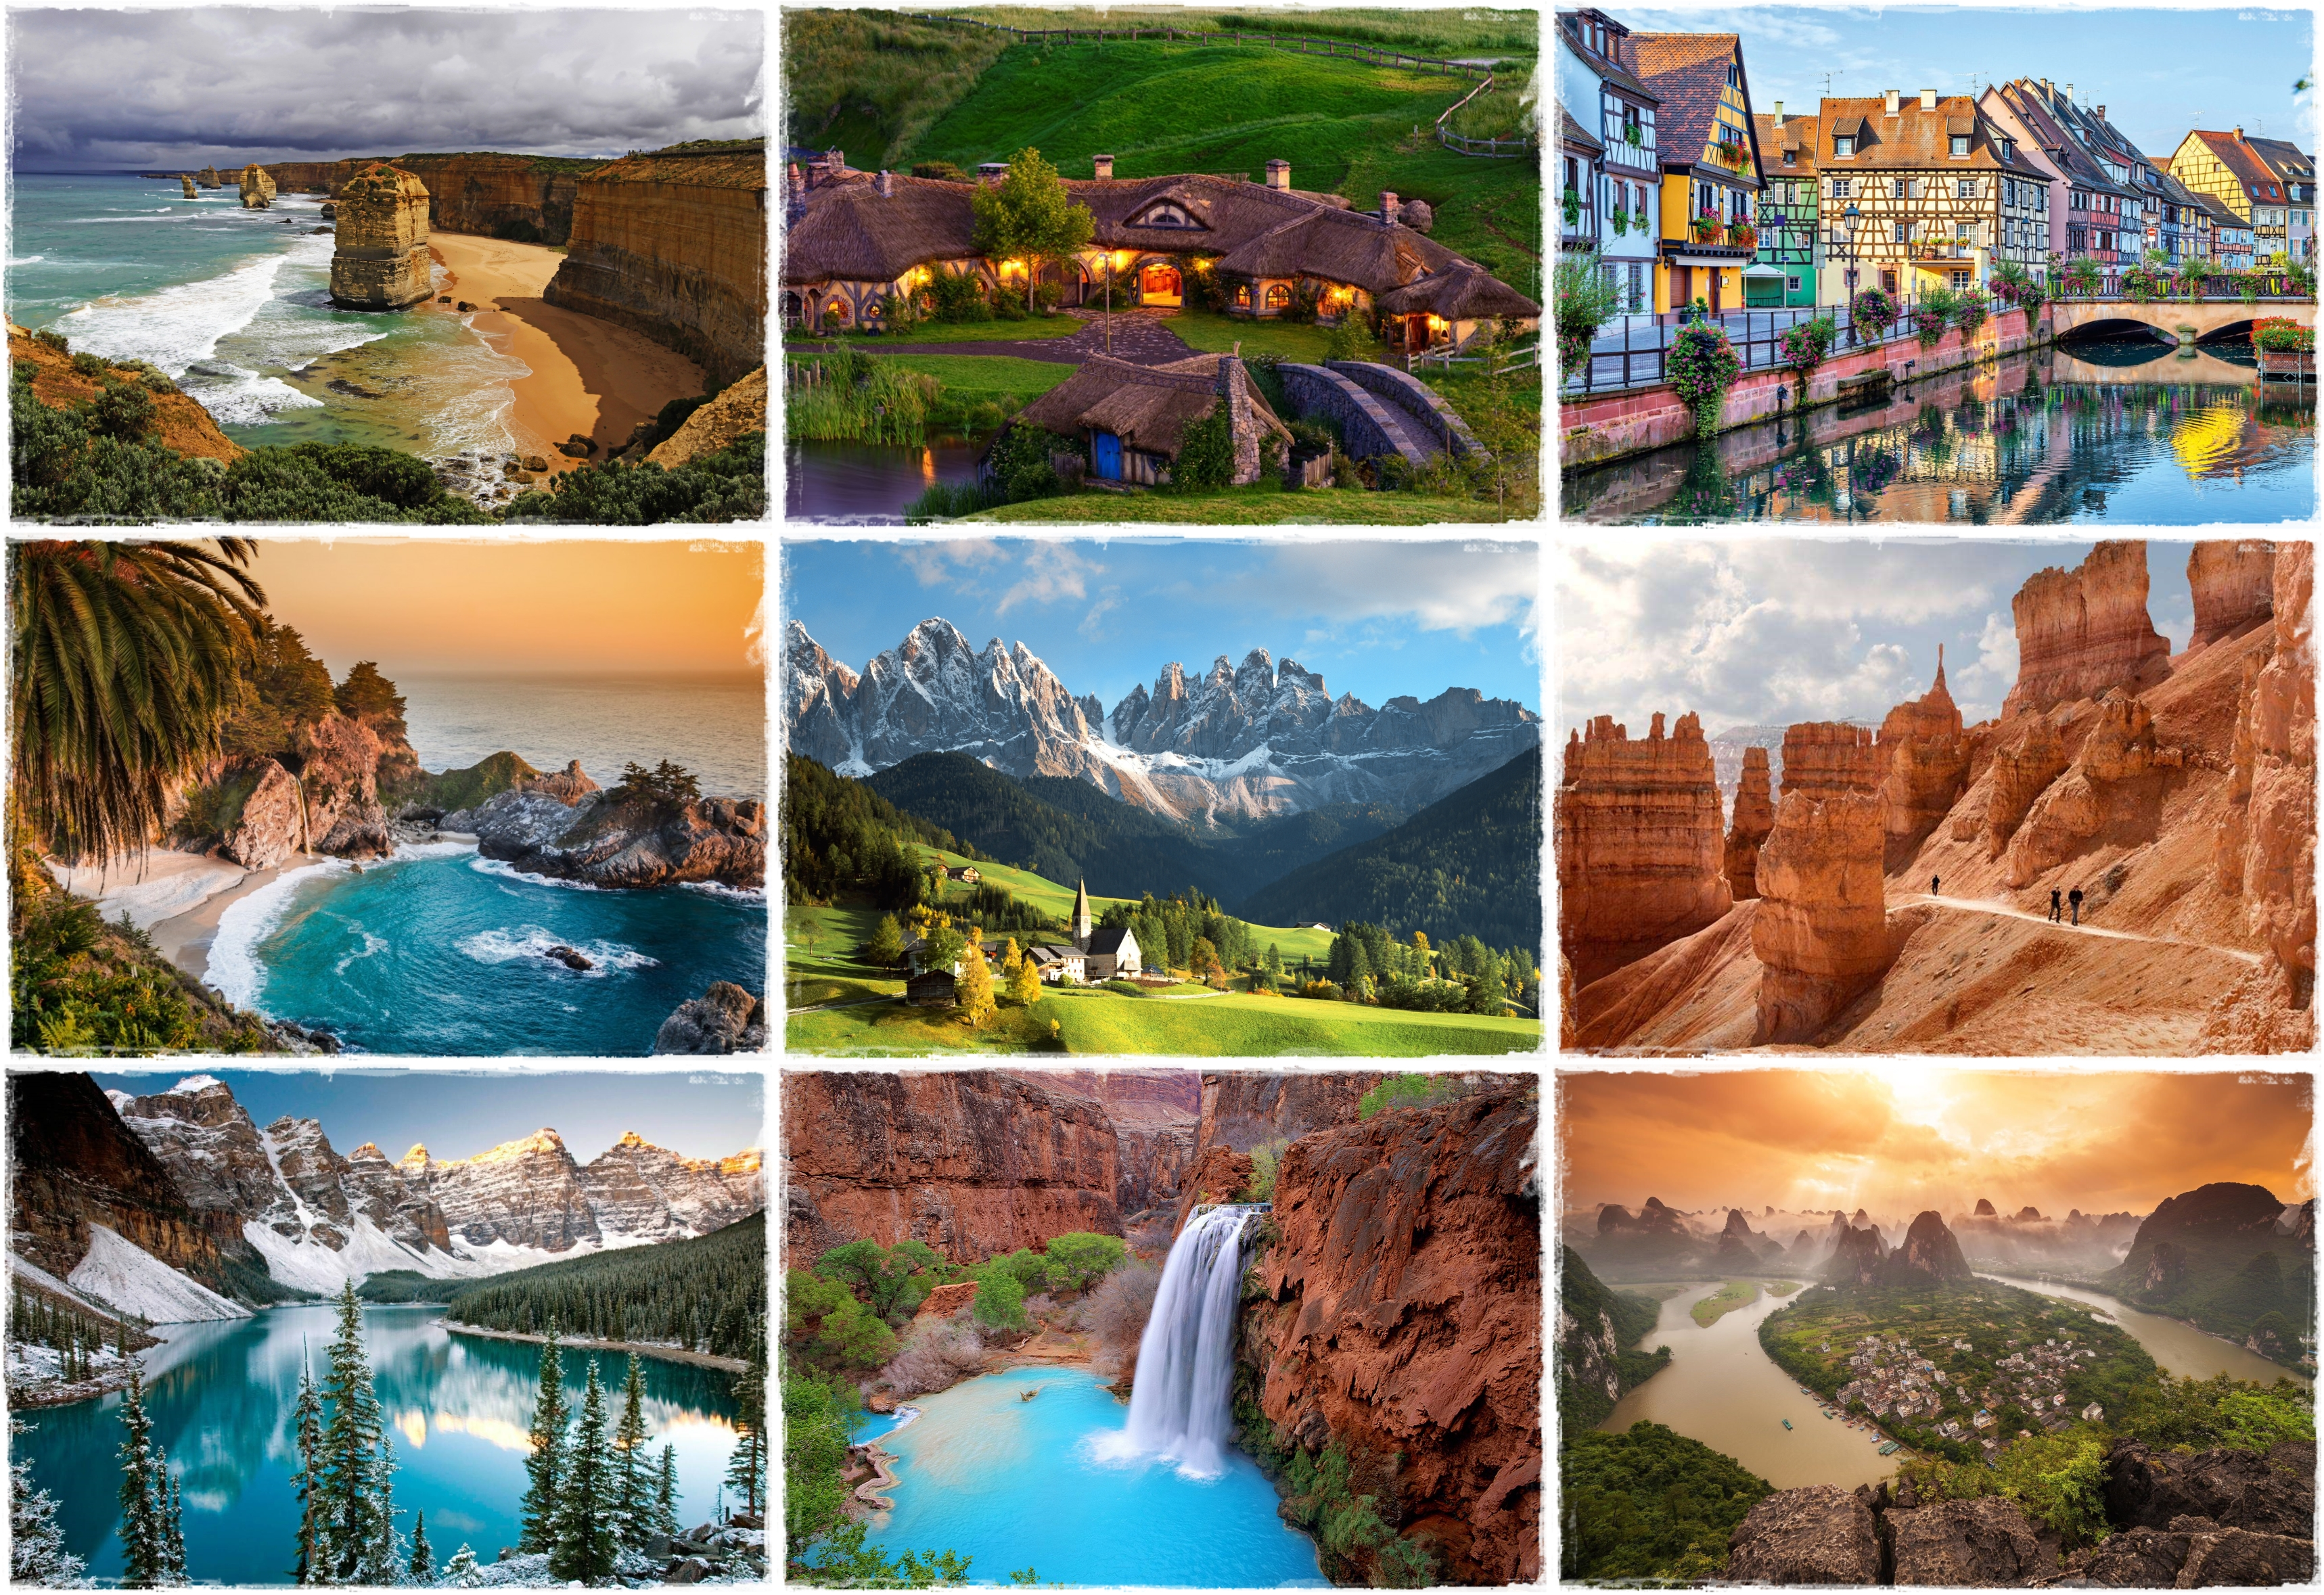 Top 10 most beautiful places on earth The most beautiful places on earth to visit